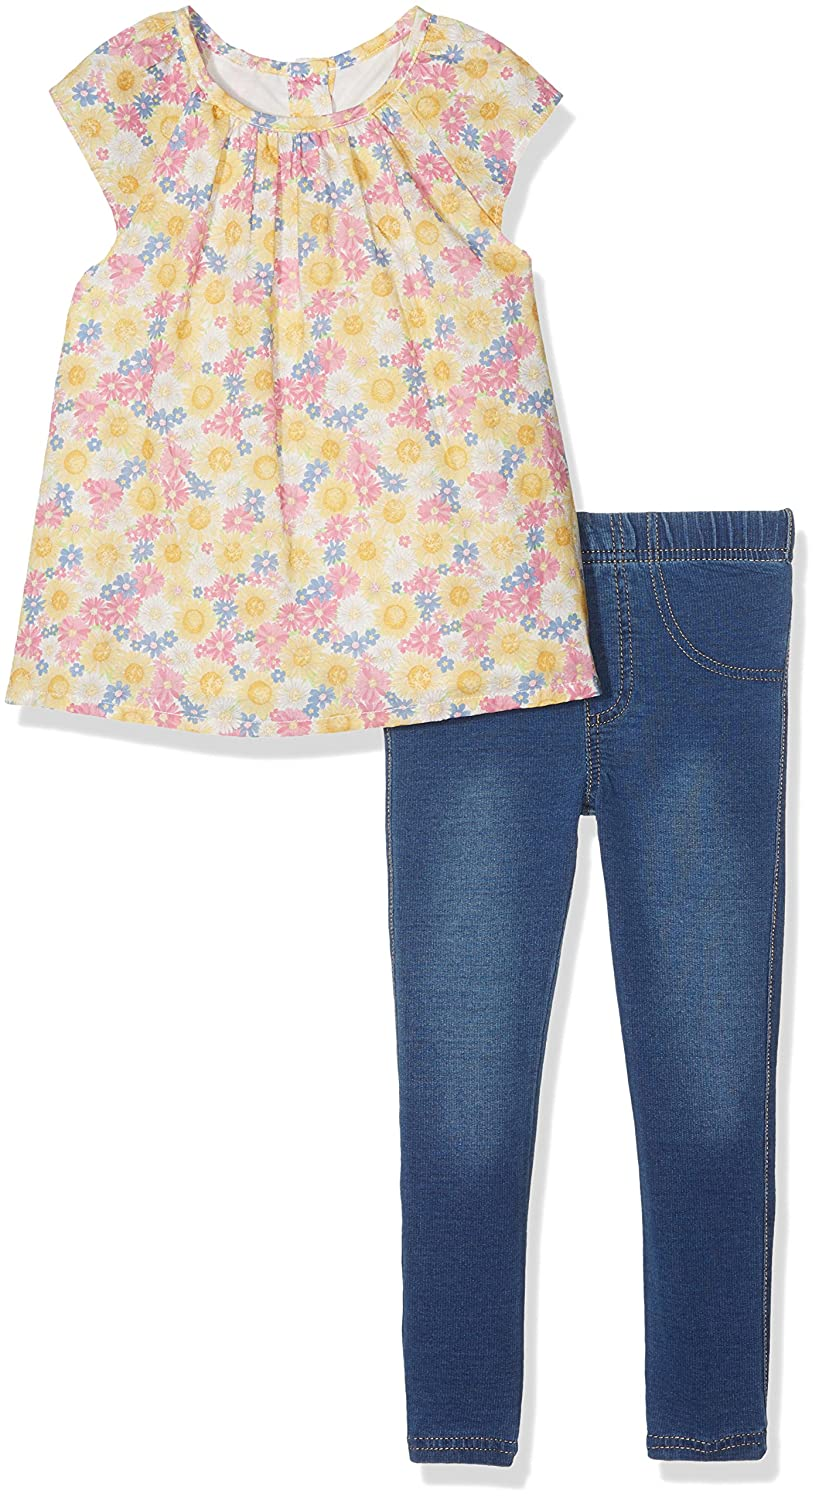 Floral Blouse and Jeggings Set Yellow Mothercare 915186